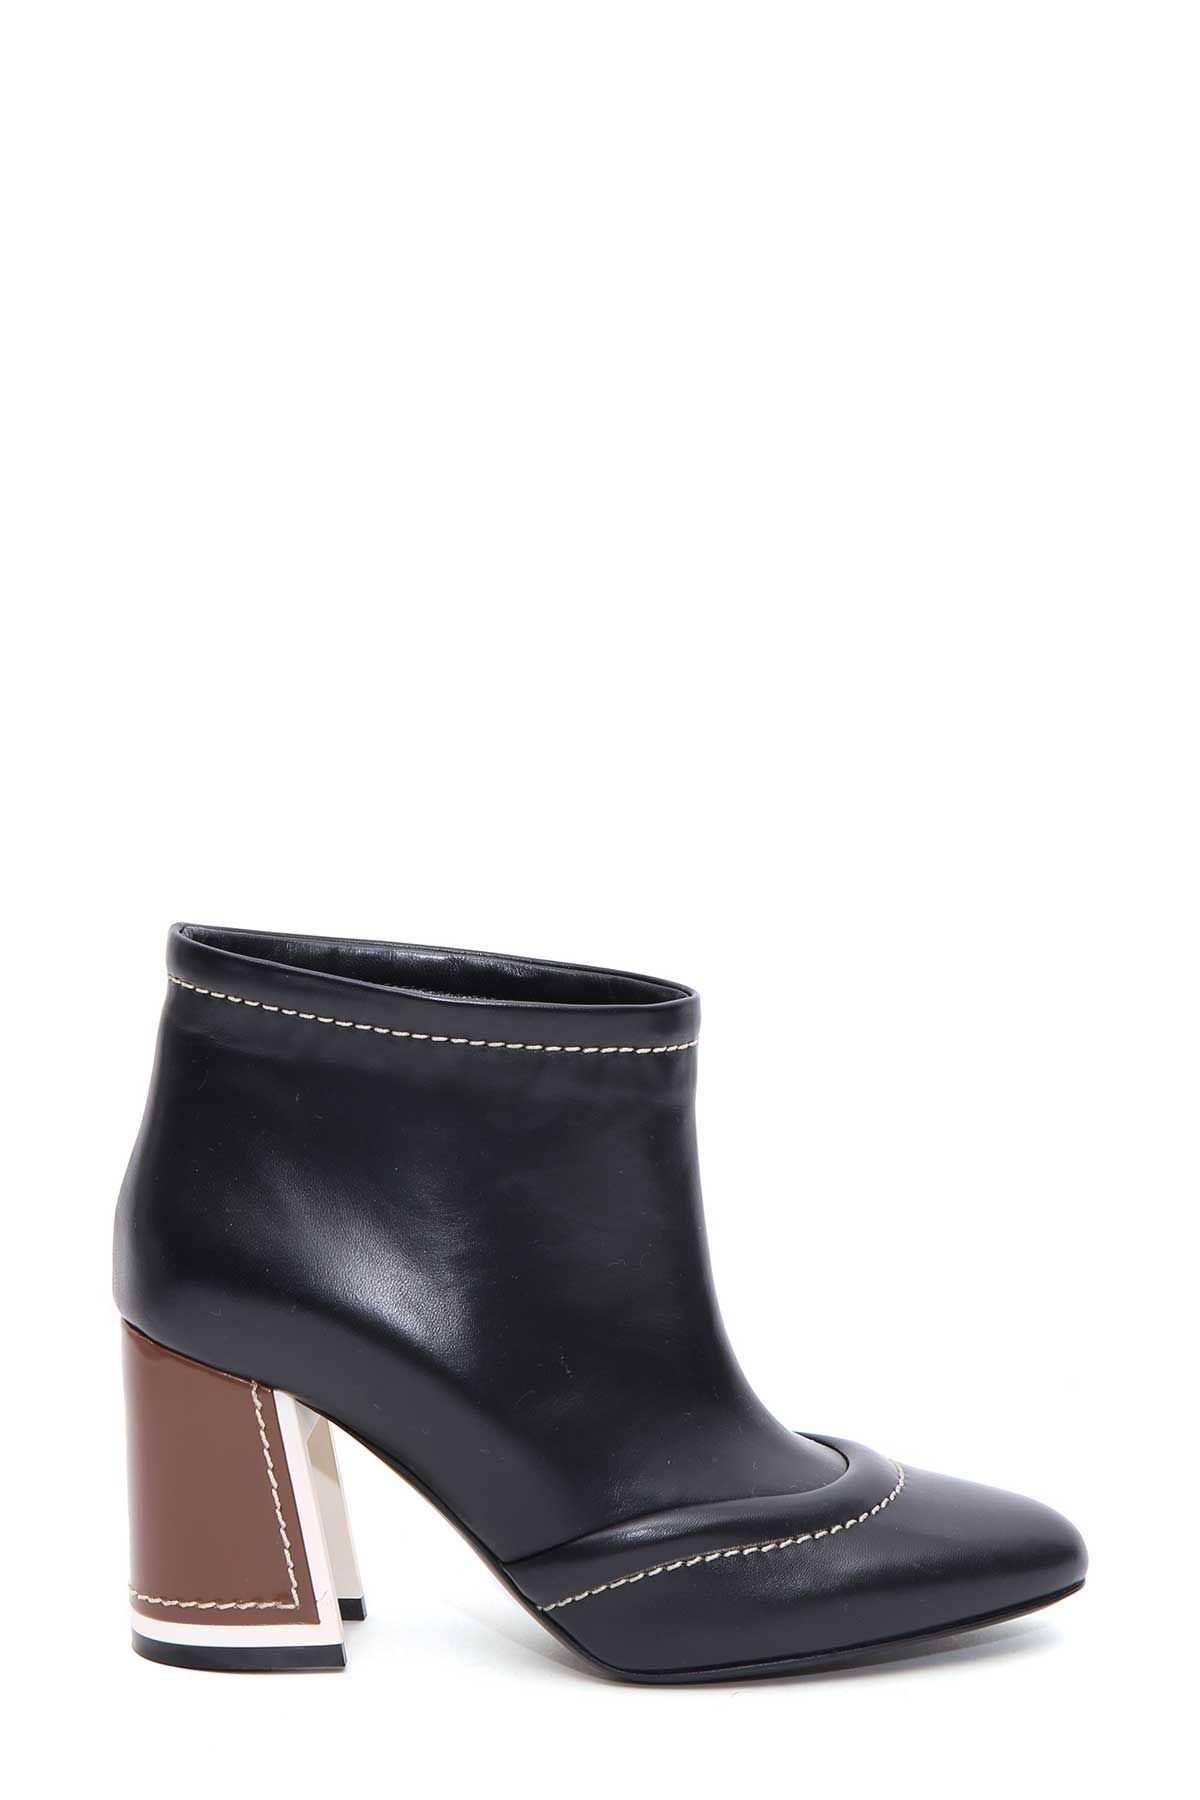 Marni Satin Platform Booties outlet choice official cheap price best deals free shipping cost Q8QKUWV